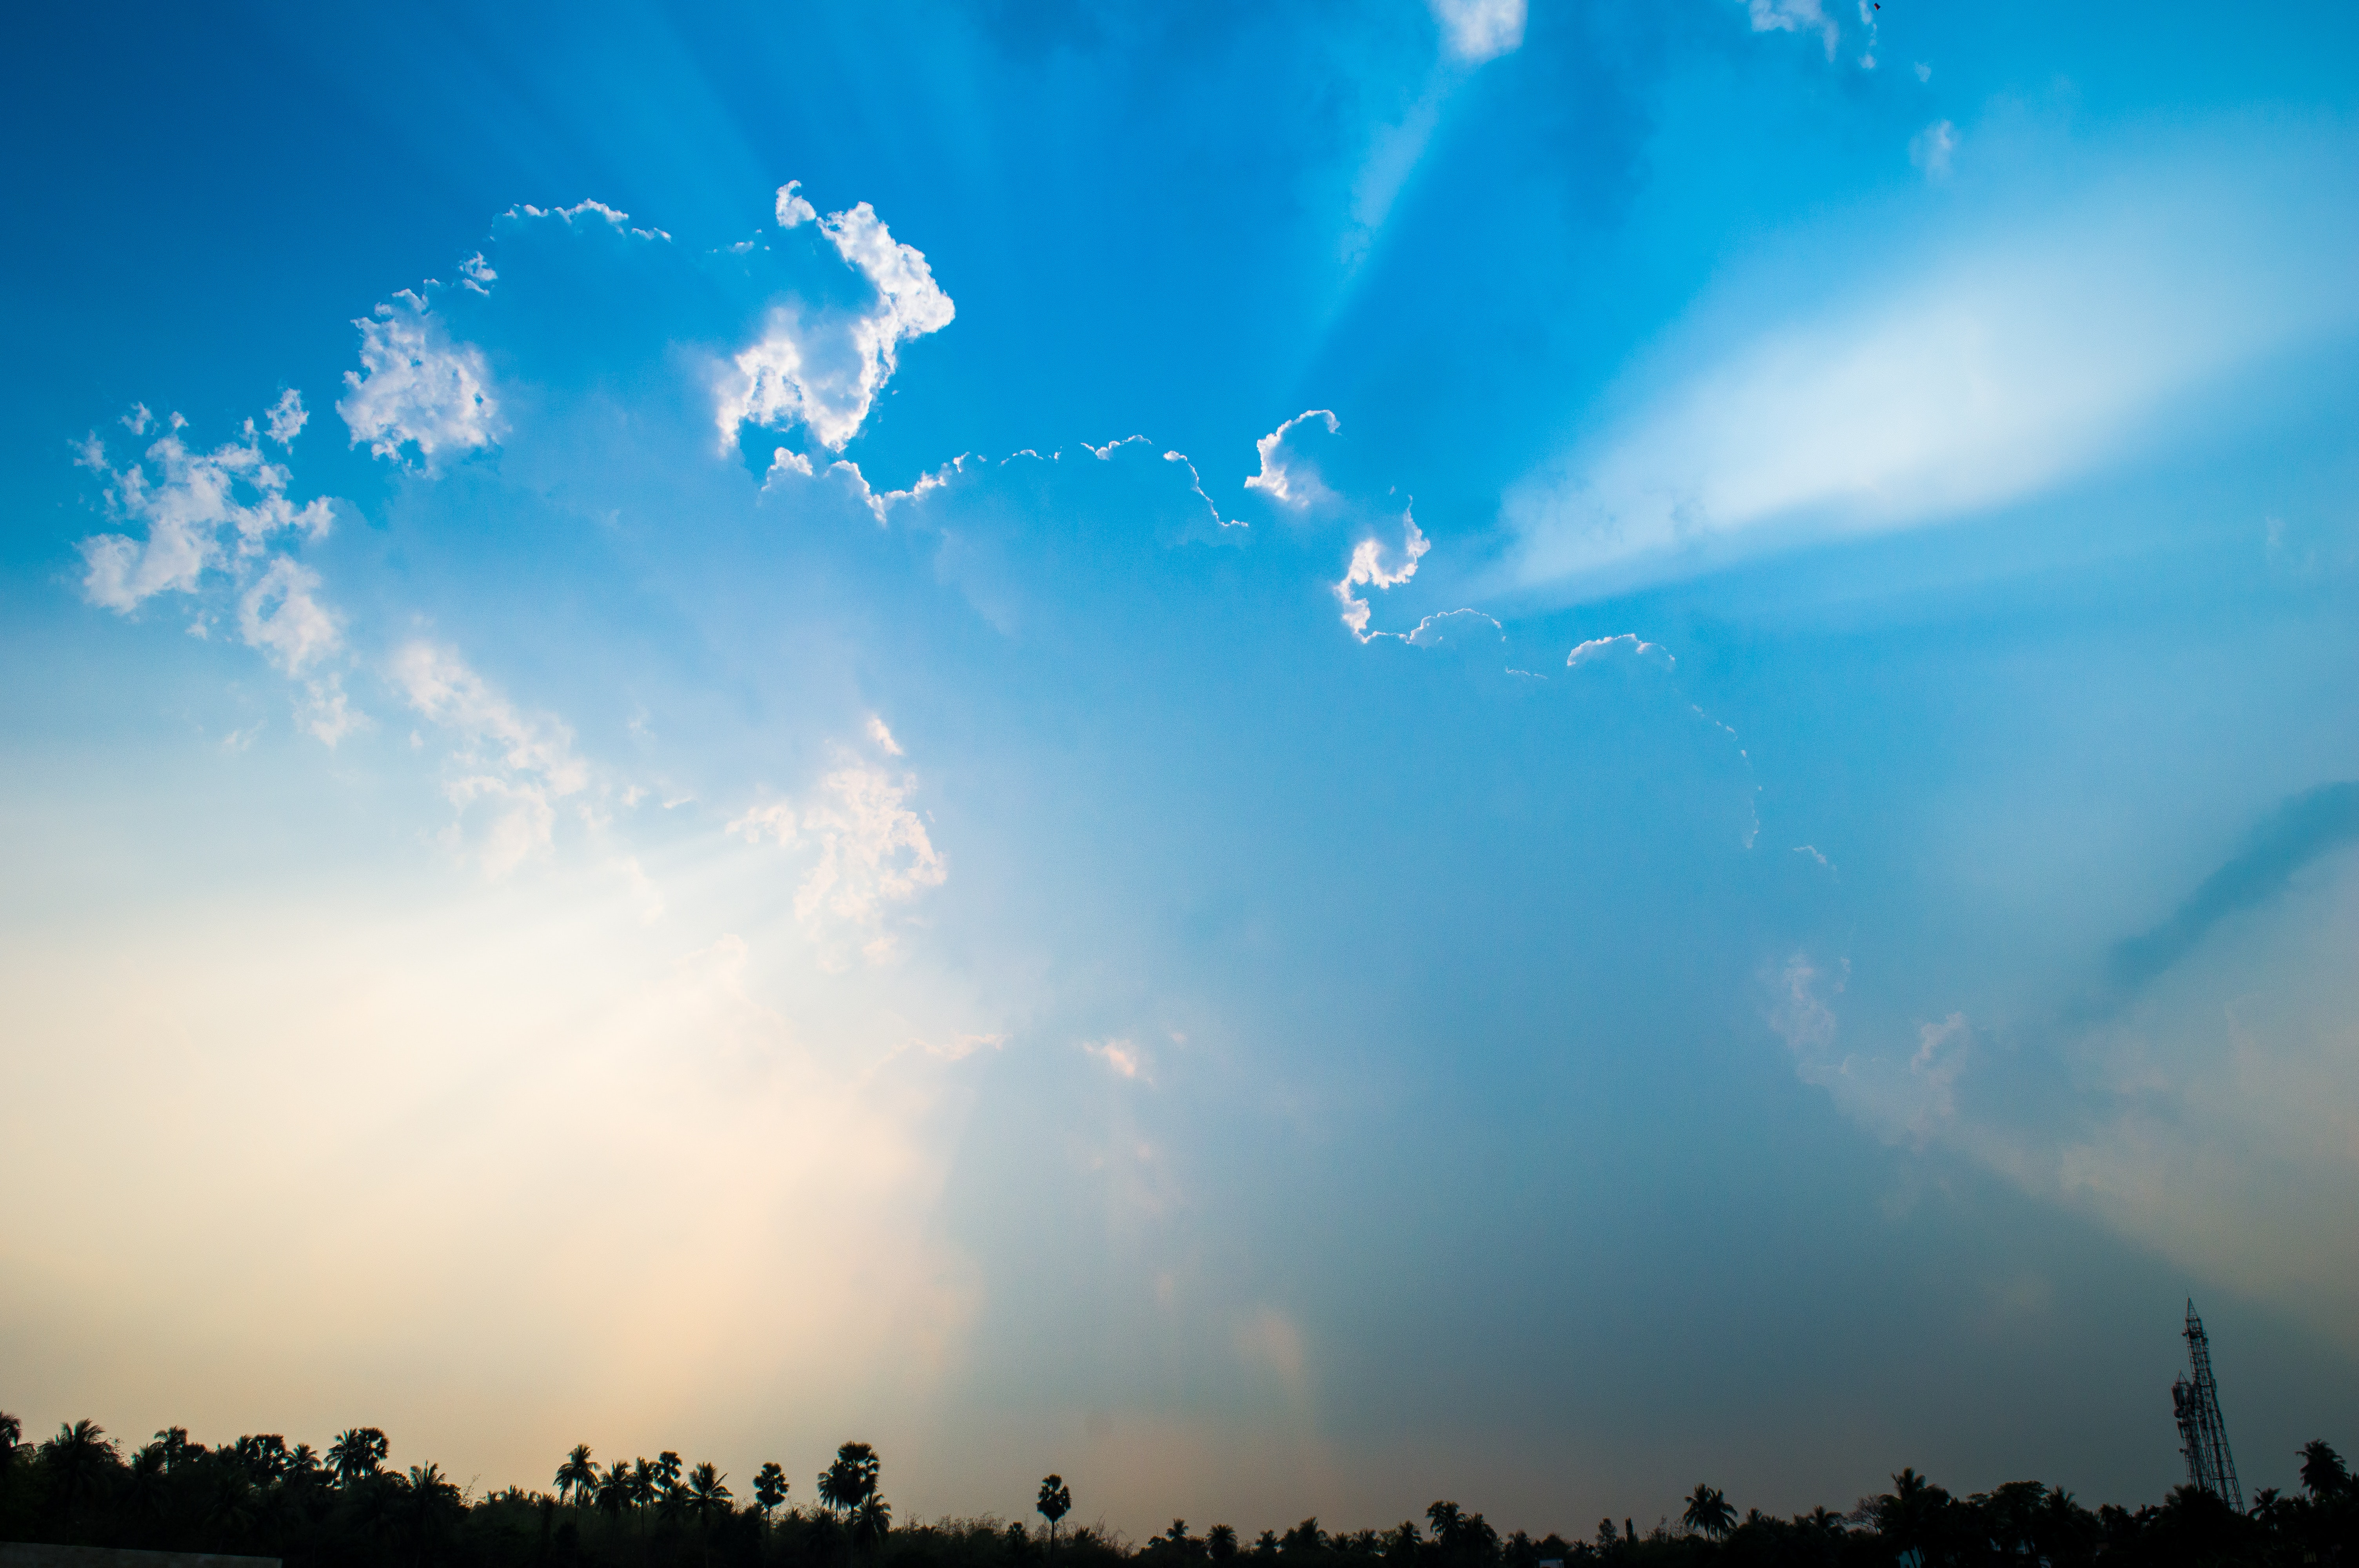 Trees Under Blue Sky And White Clouds Free Stock Photo